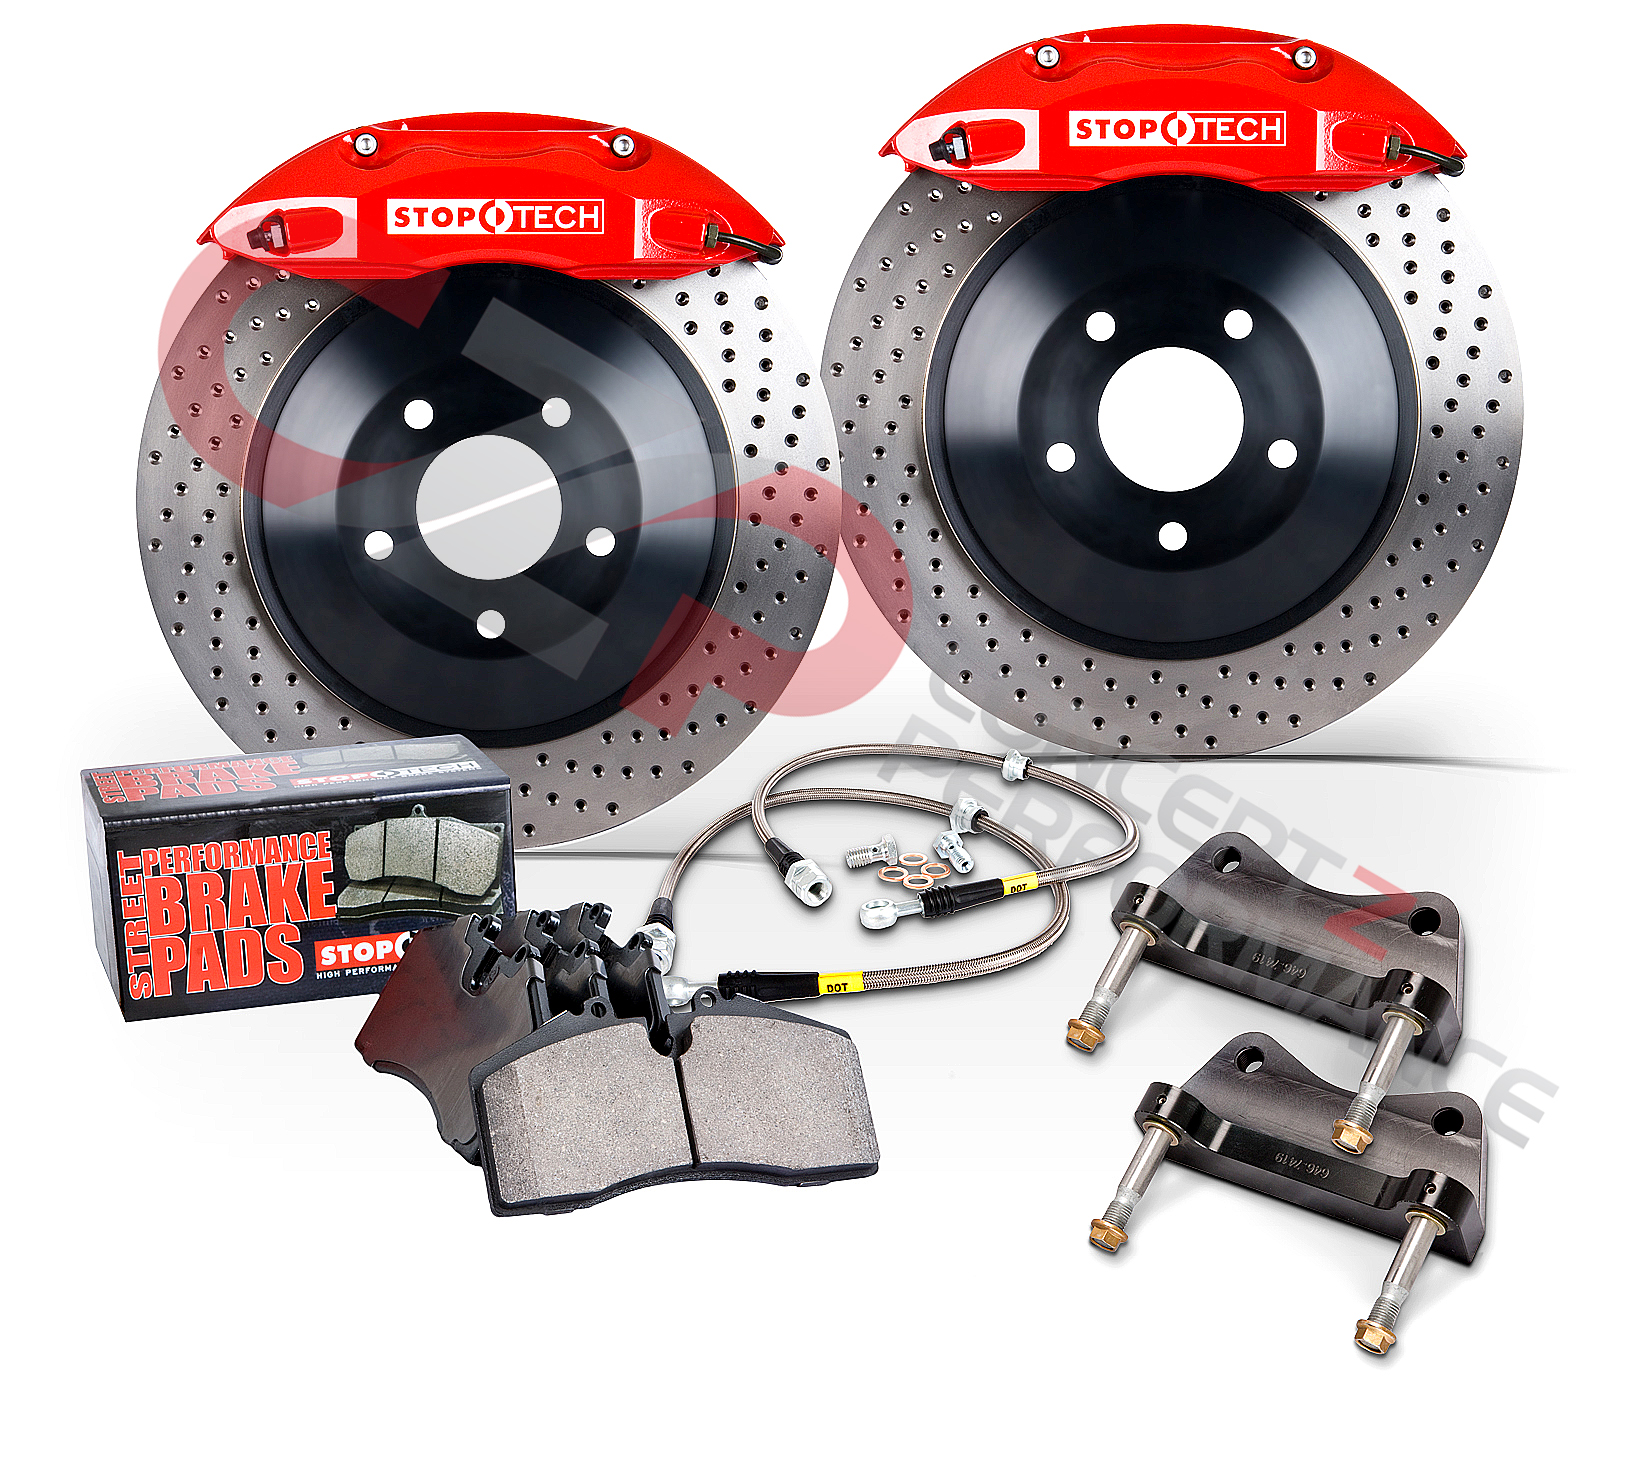 Brake Kits vs Big Brake Kits